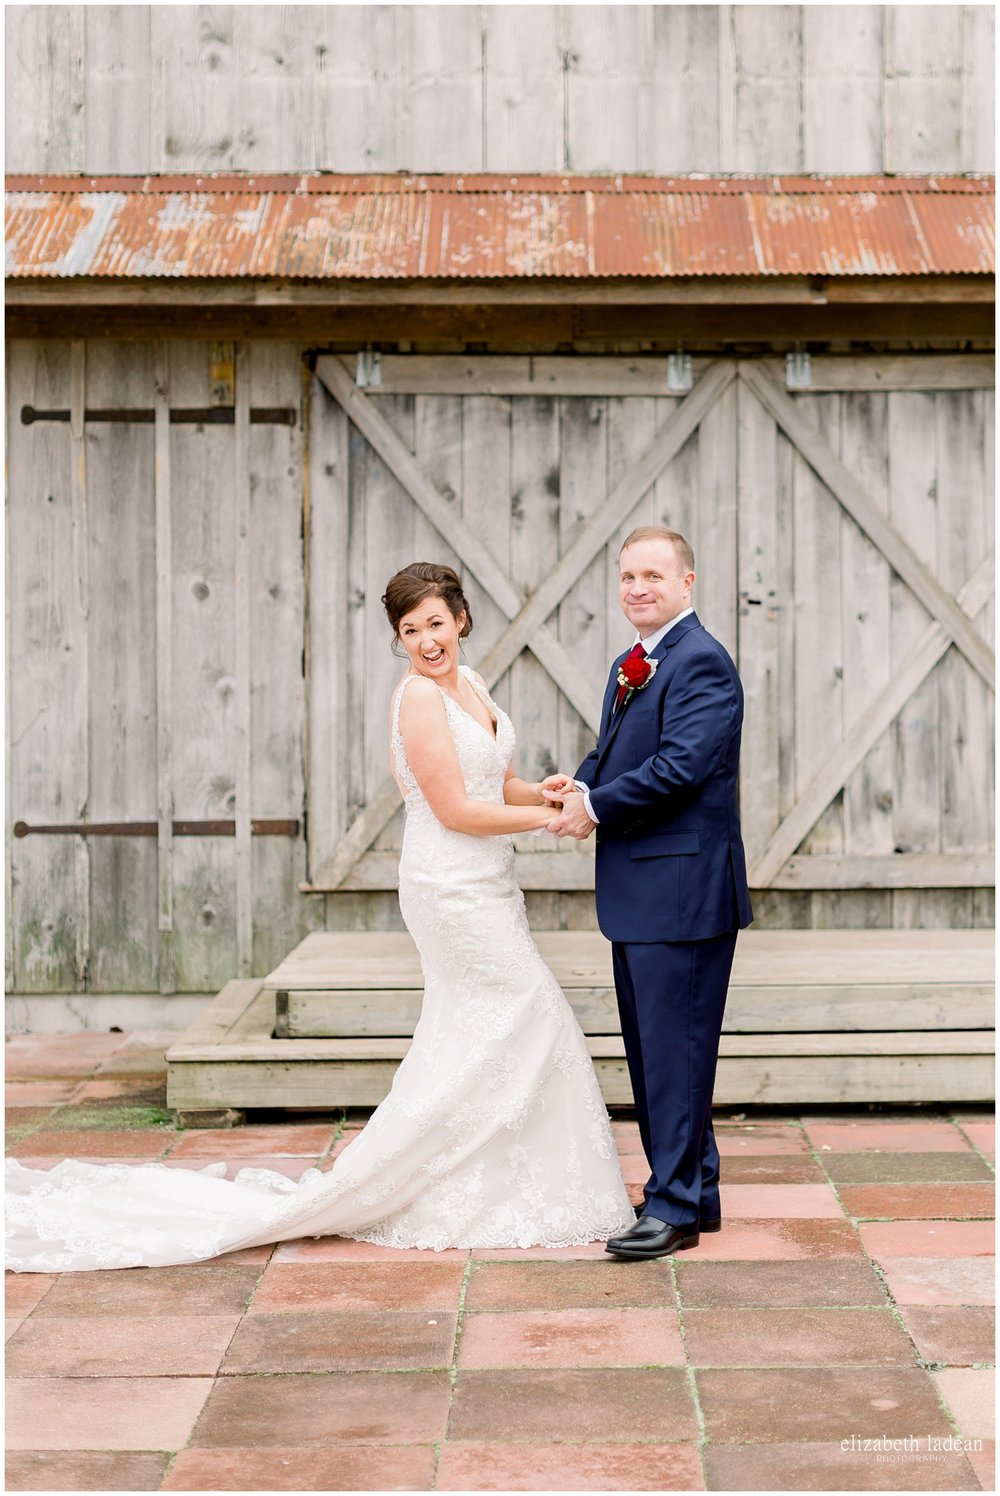 -behind-the-scenes-of-a-wedding-photographer-2018-elizabeth-ladean-photography-photo_3613.jpg